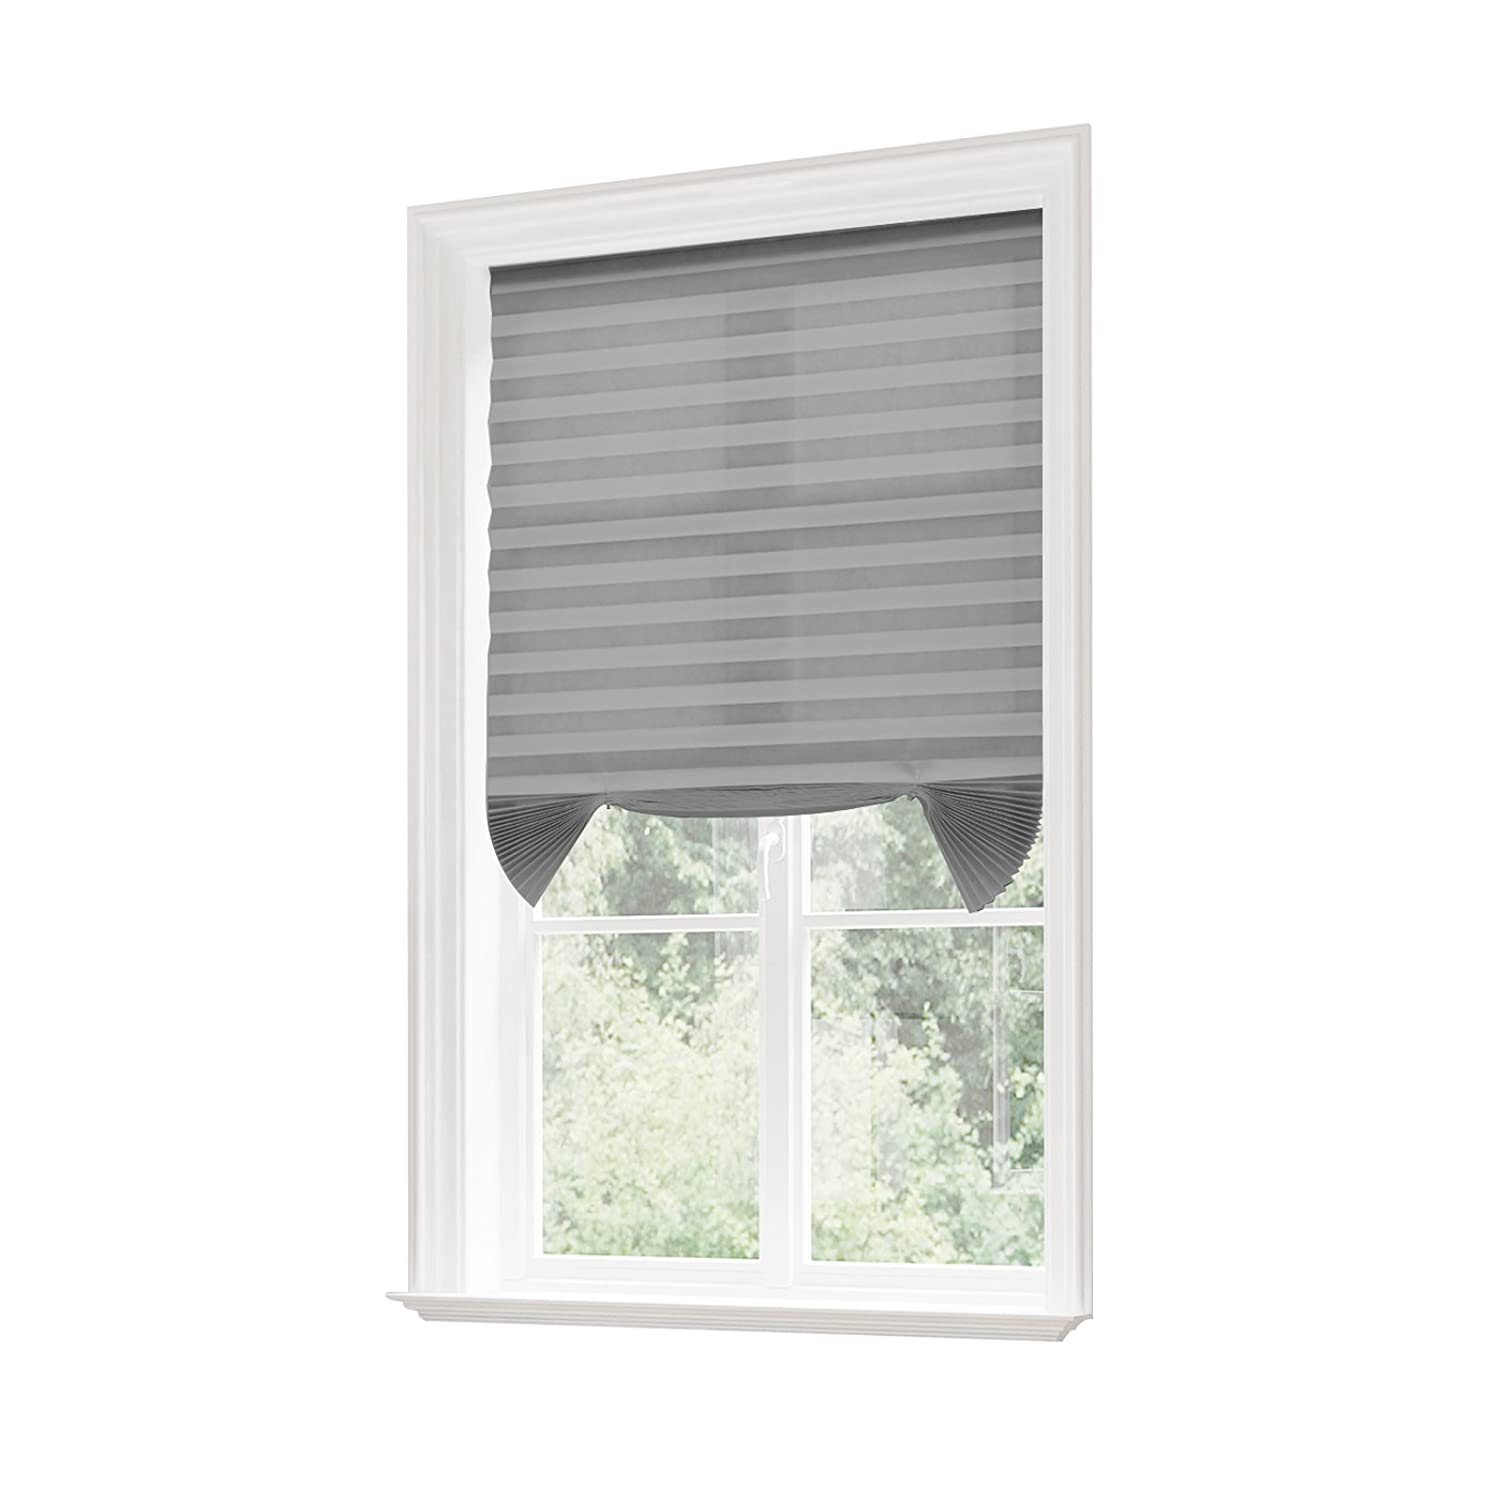 SBARTAR 6 Pack Window Pleated Shades Darkening Cordless Quick Fix Pleated Fabric Window Shades for Home Office Vacation 36